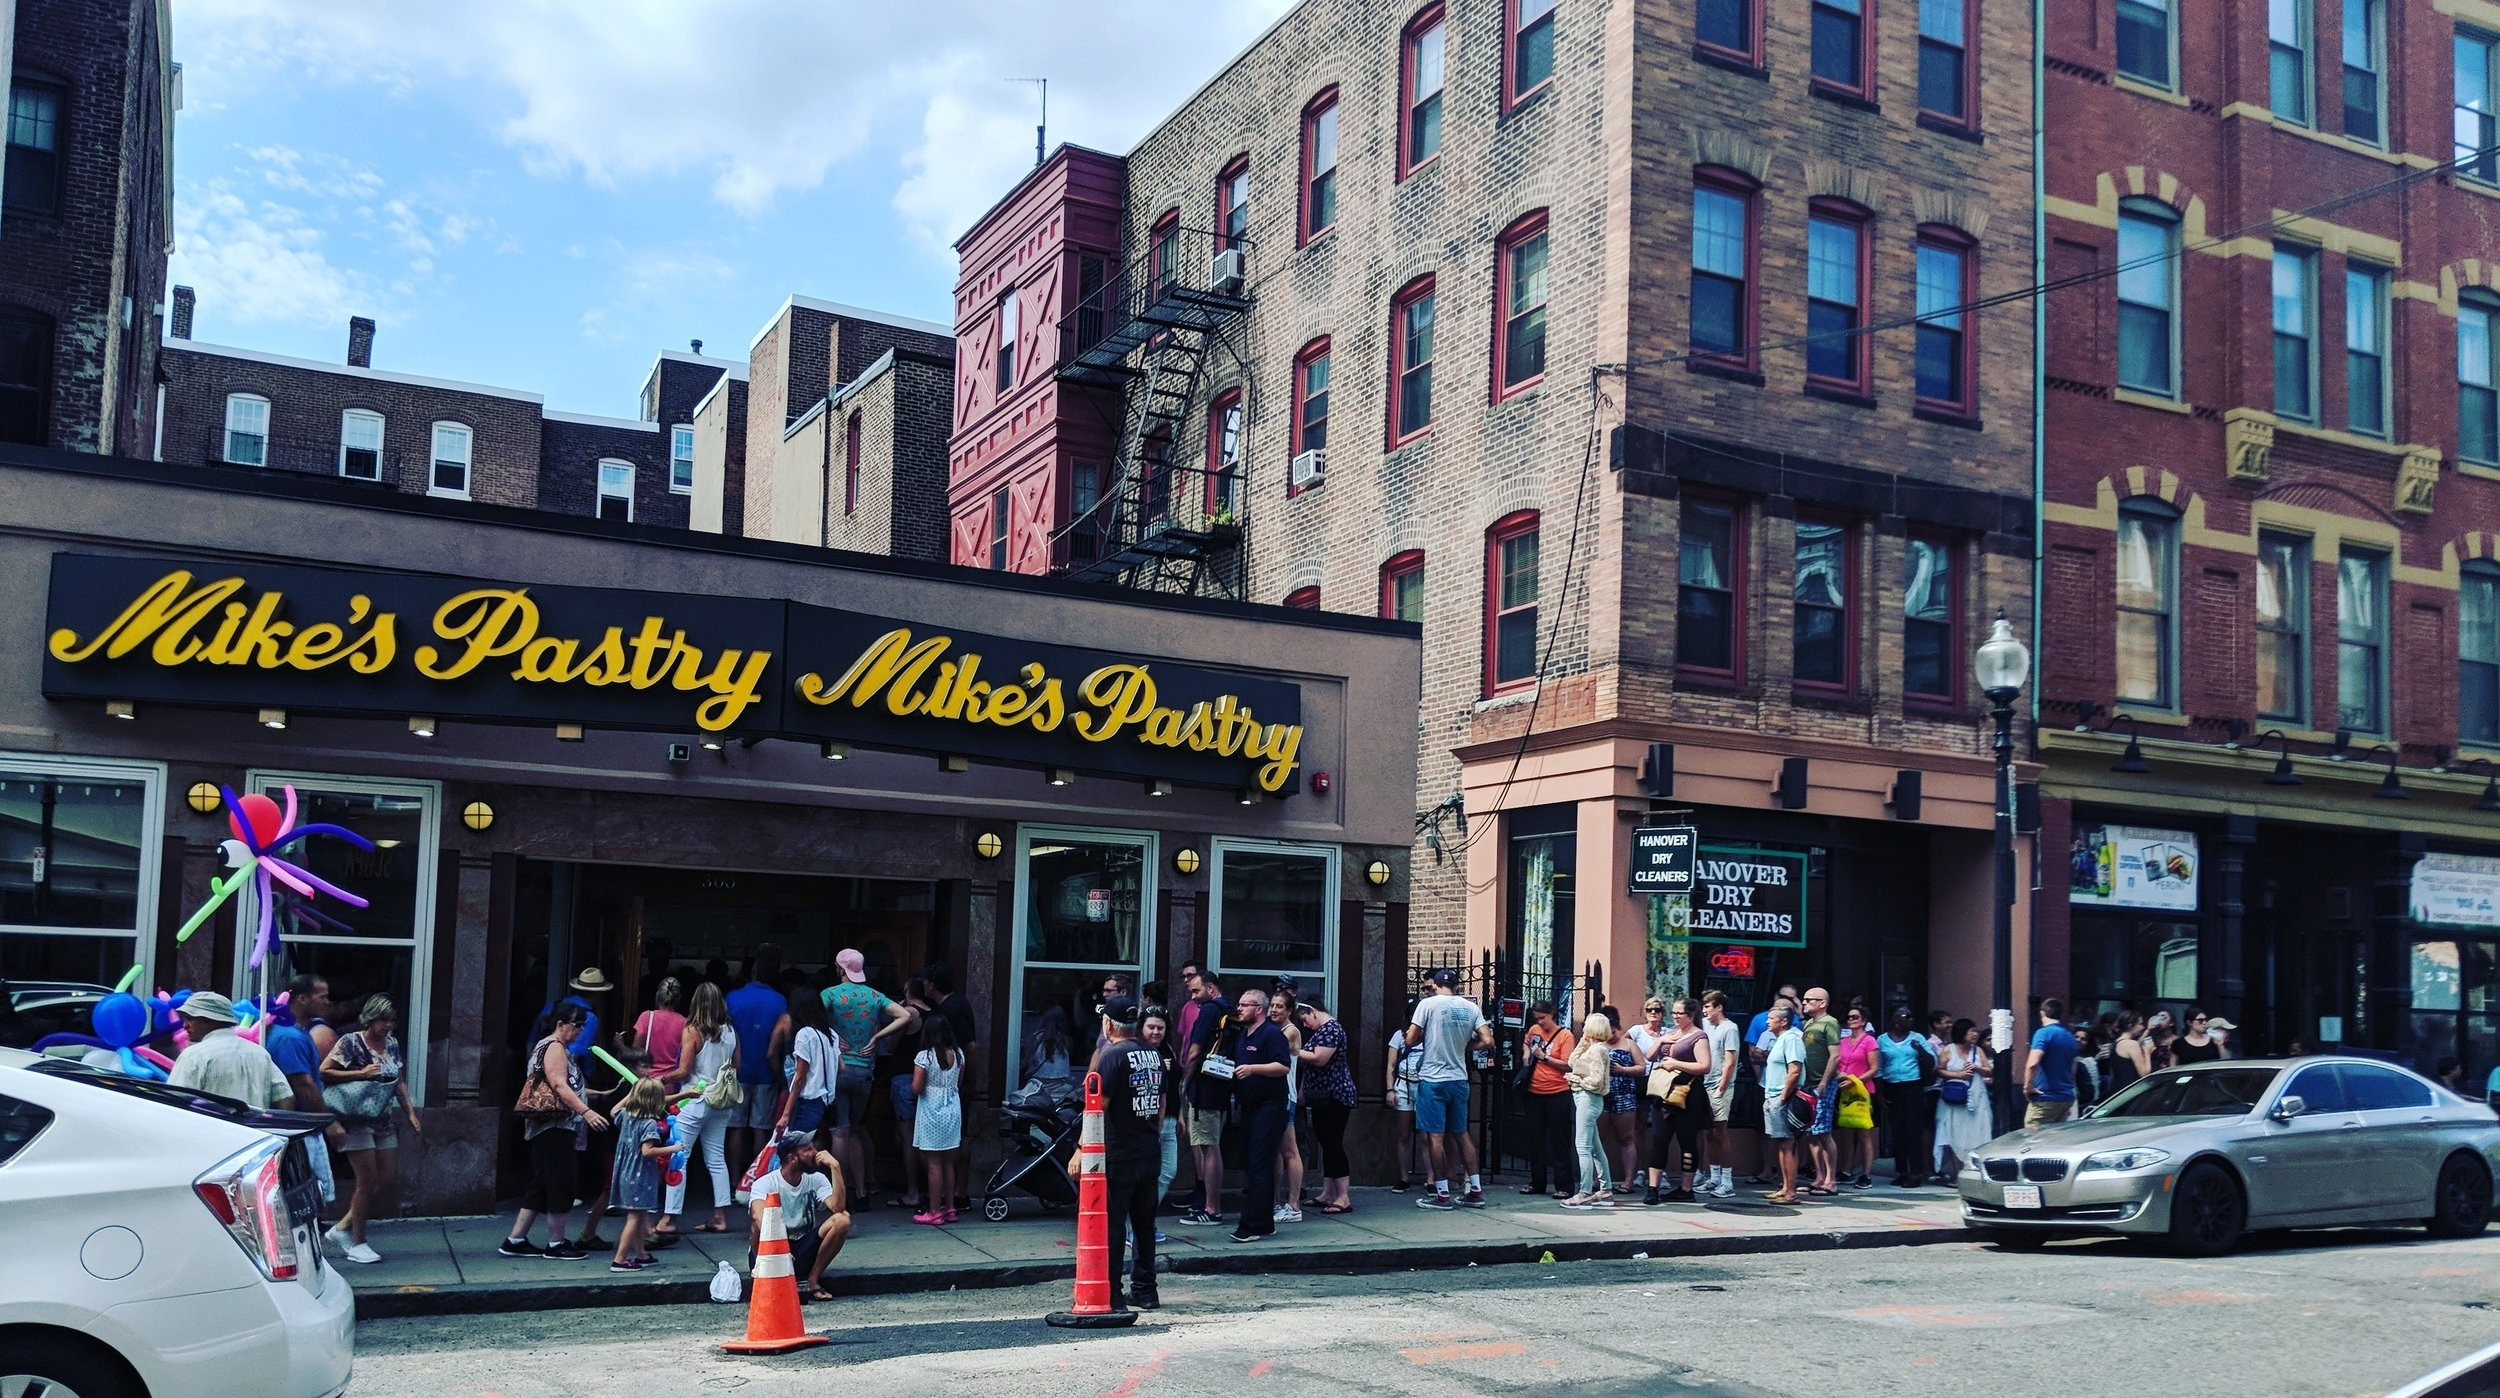 The Mike's Pastry Line